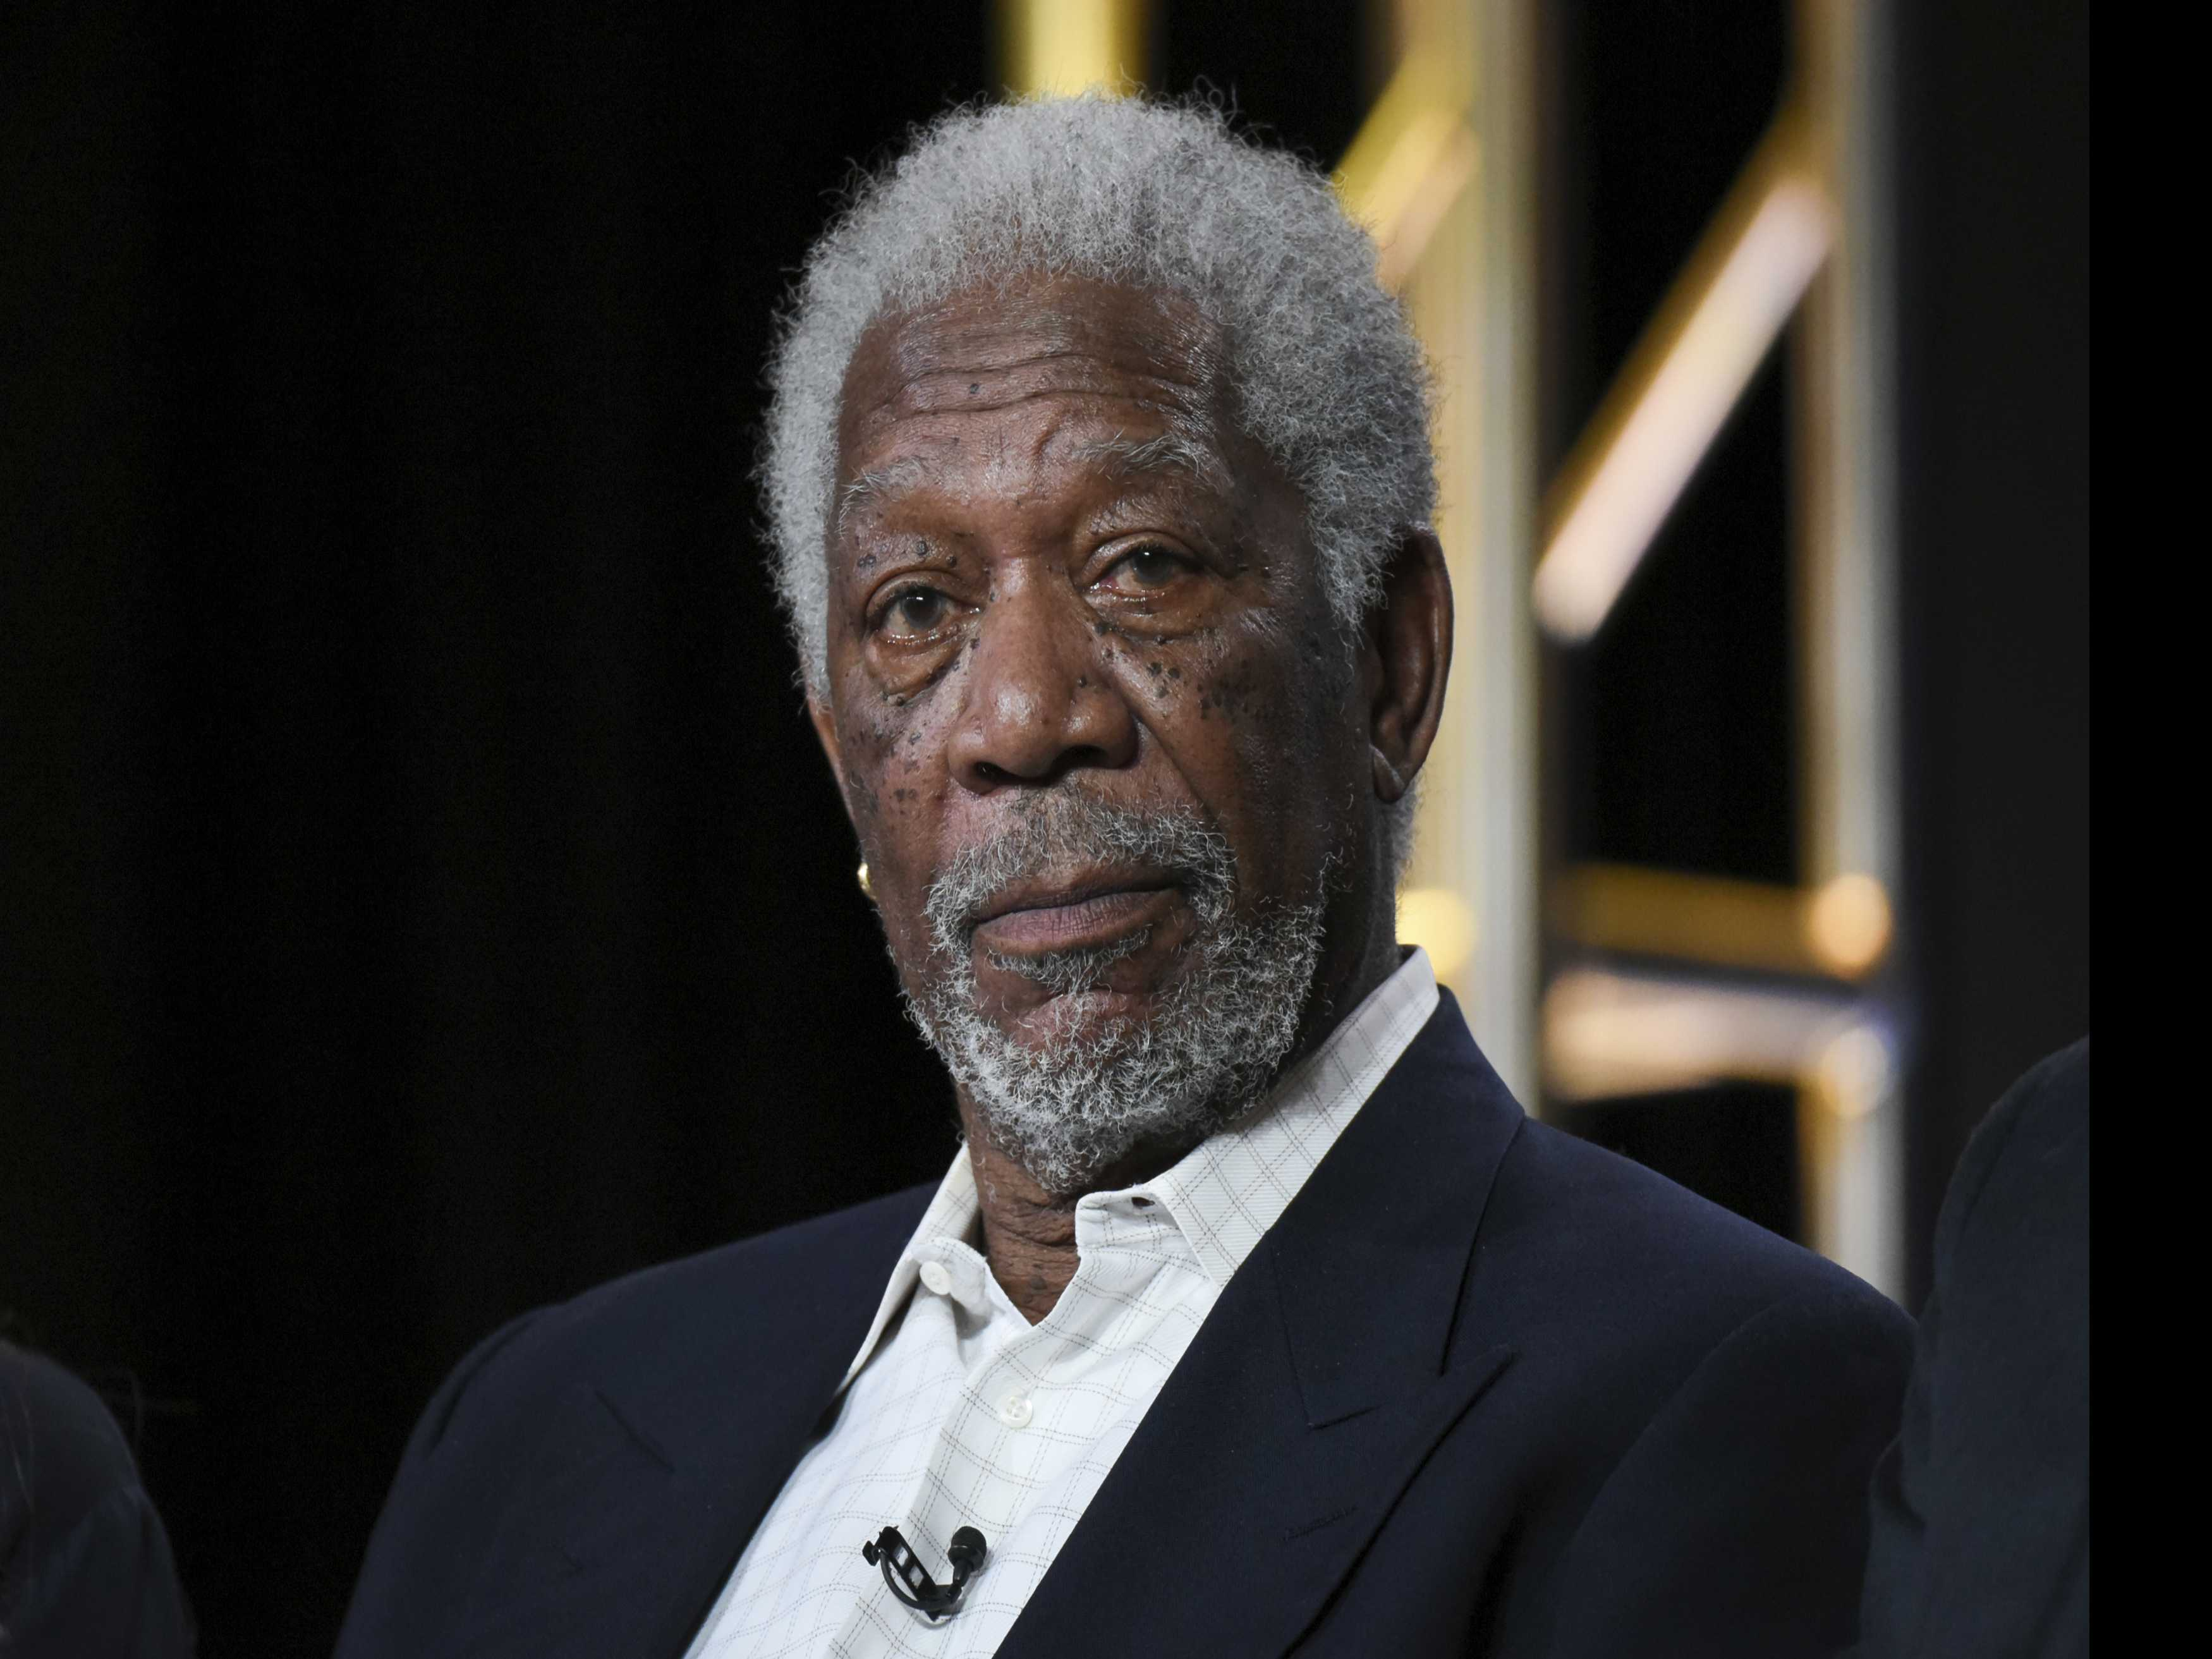 Morgan Freeman Says He Did Not Assault Women